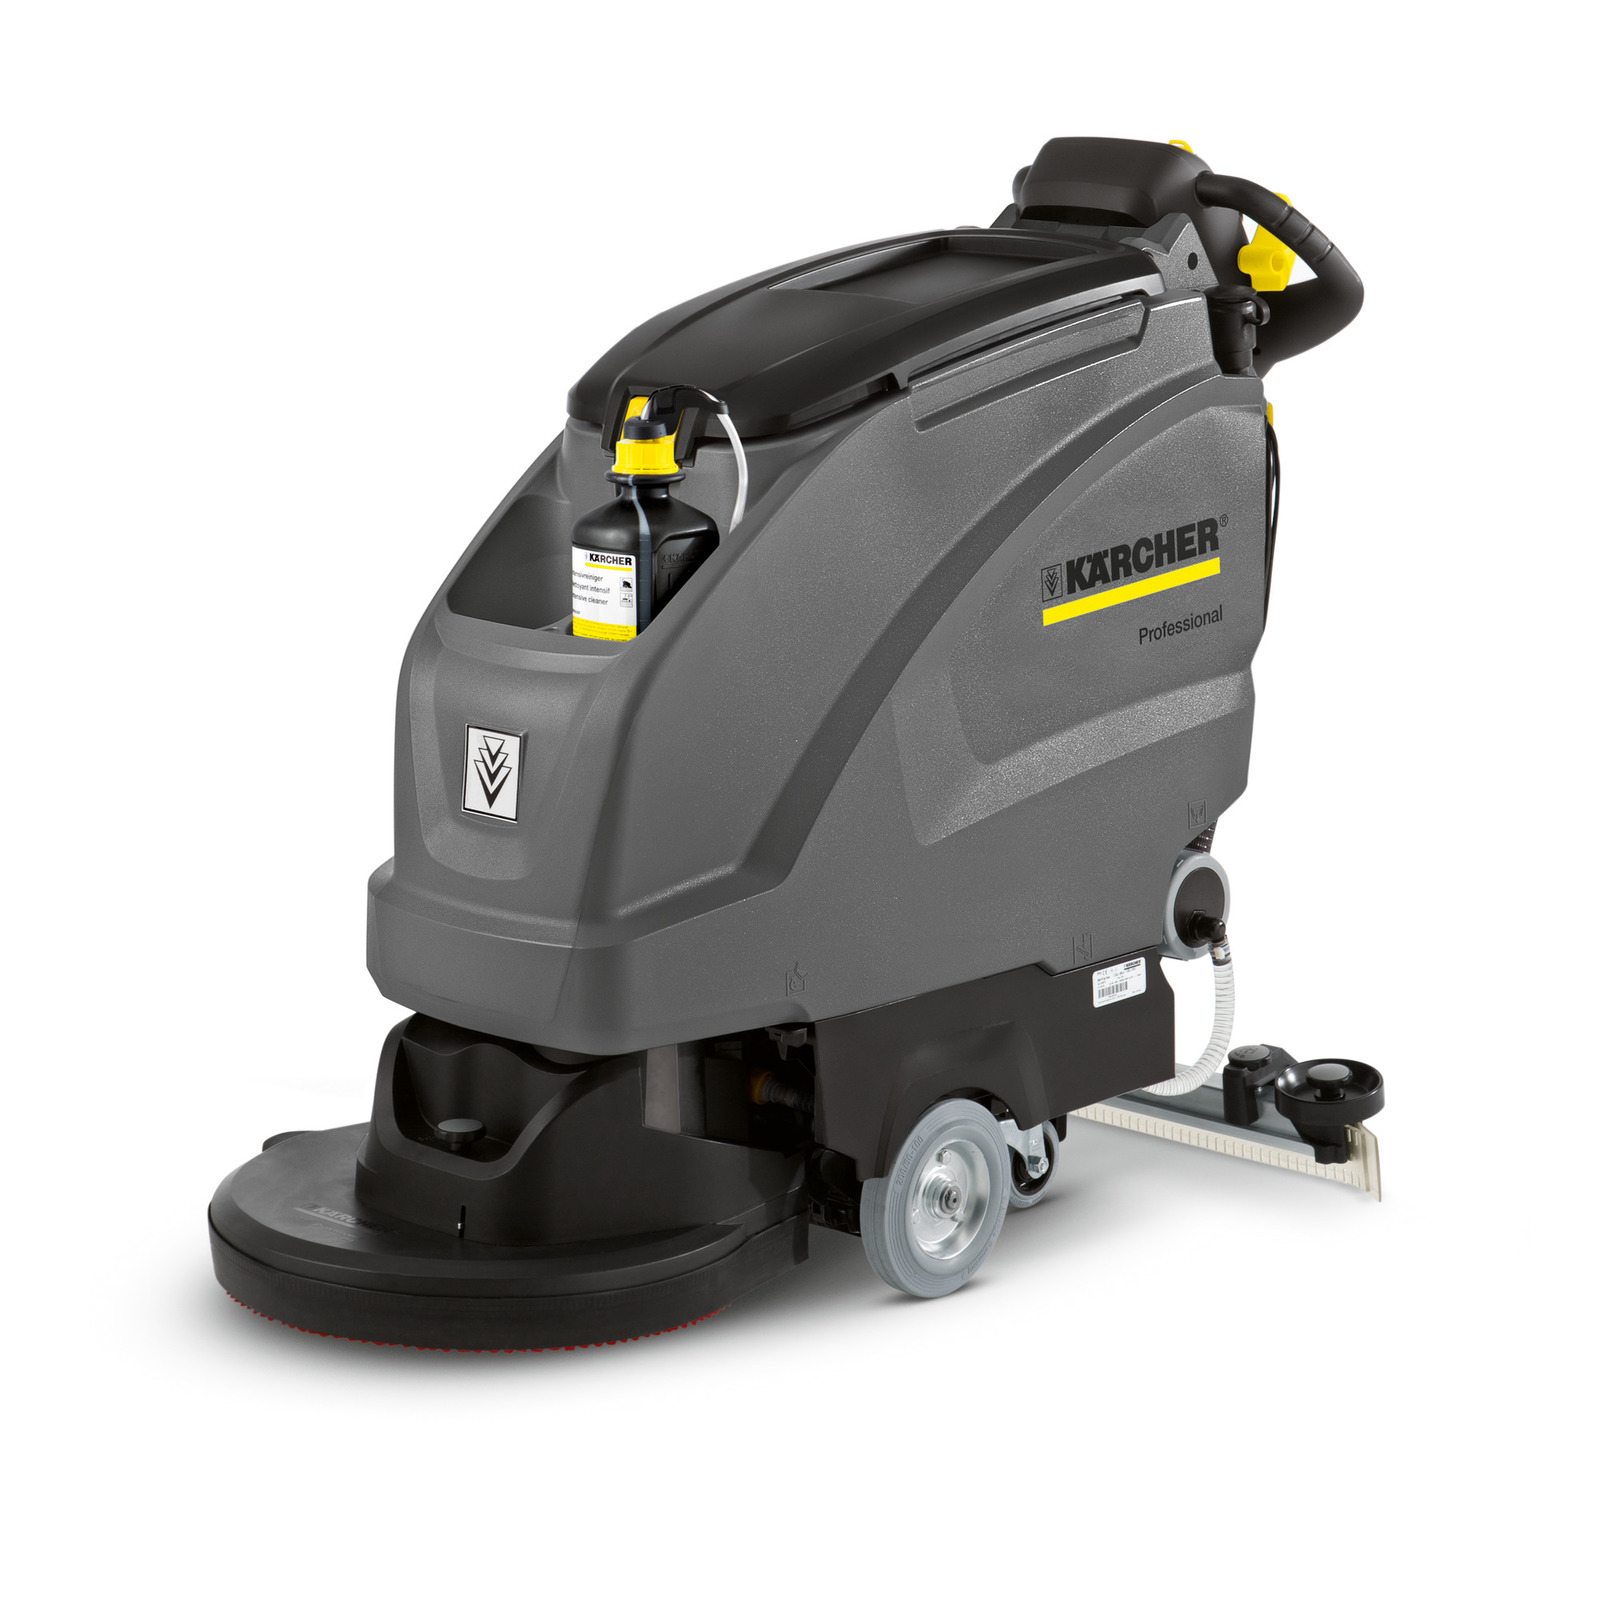 Karcher B 40 C Bp Traction Drive Auto Scrubber 24v 105 Ah Batteries D51 Disk Scrub Deck 9.841-373.0 Freight Included